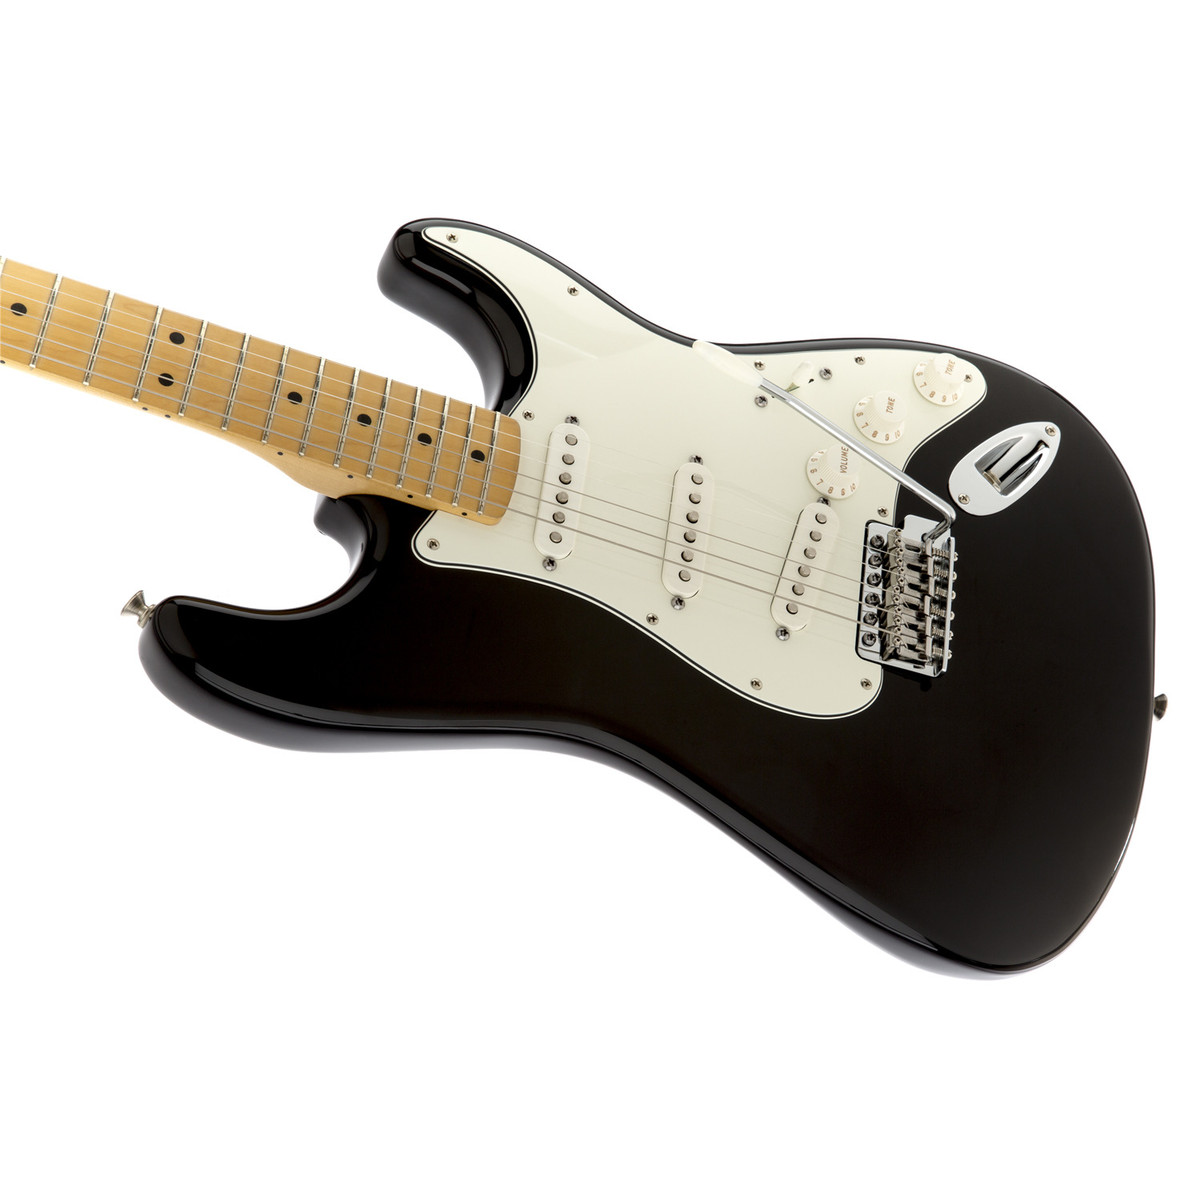 Disc Fender Standard Stratocaster Mn Black At Gear4music With Guitar Wiring Harness 3 Way Switch 2 Humbuckers Furthermore Loading Zoom